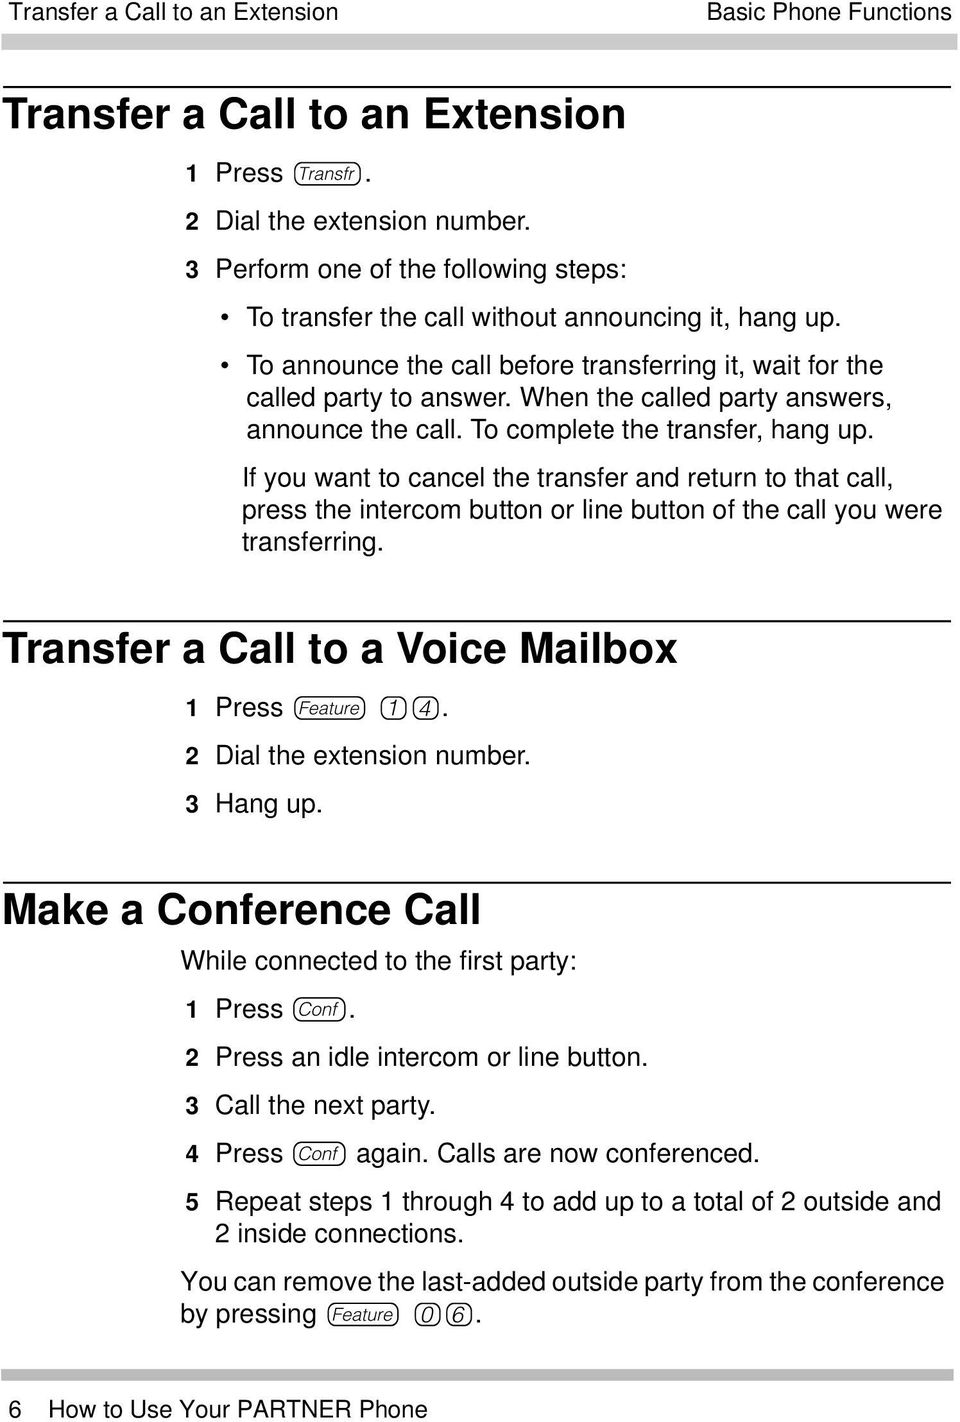 When the called party answers, announce the call. To complete the transfer, hang up.